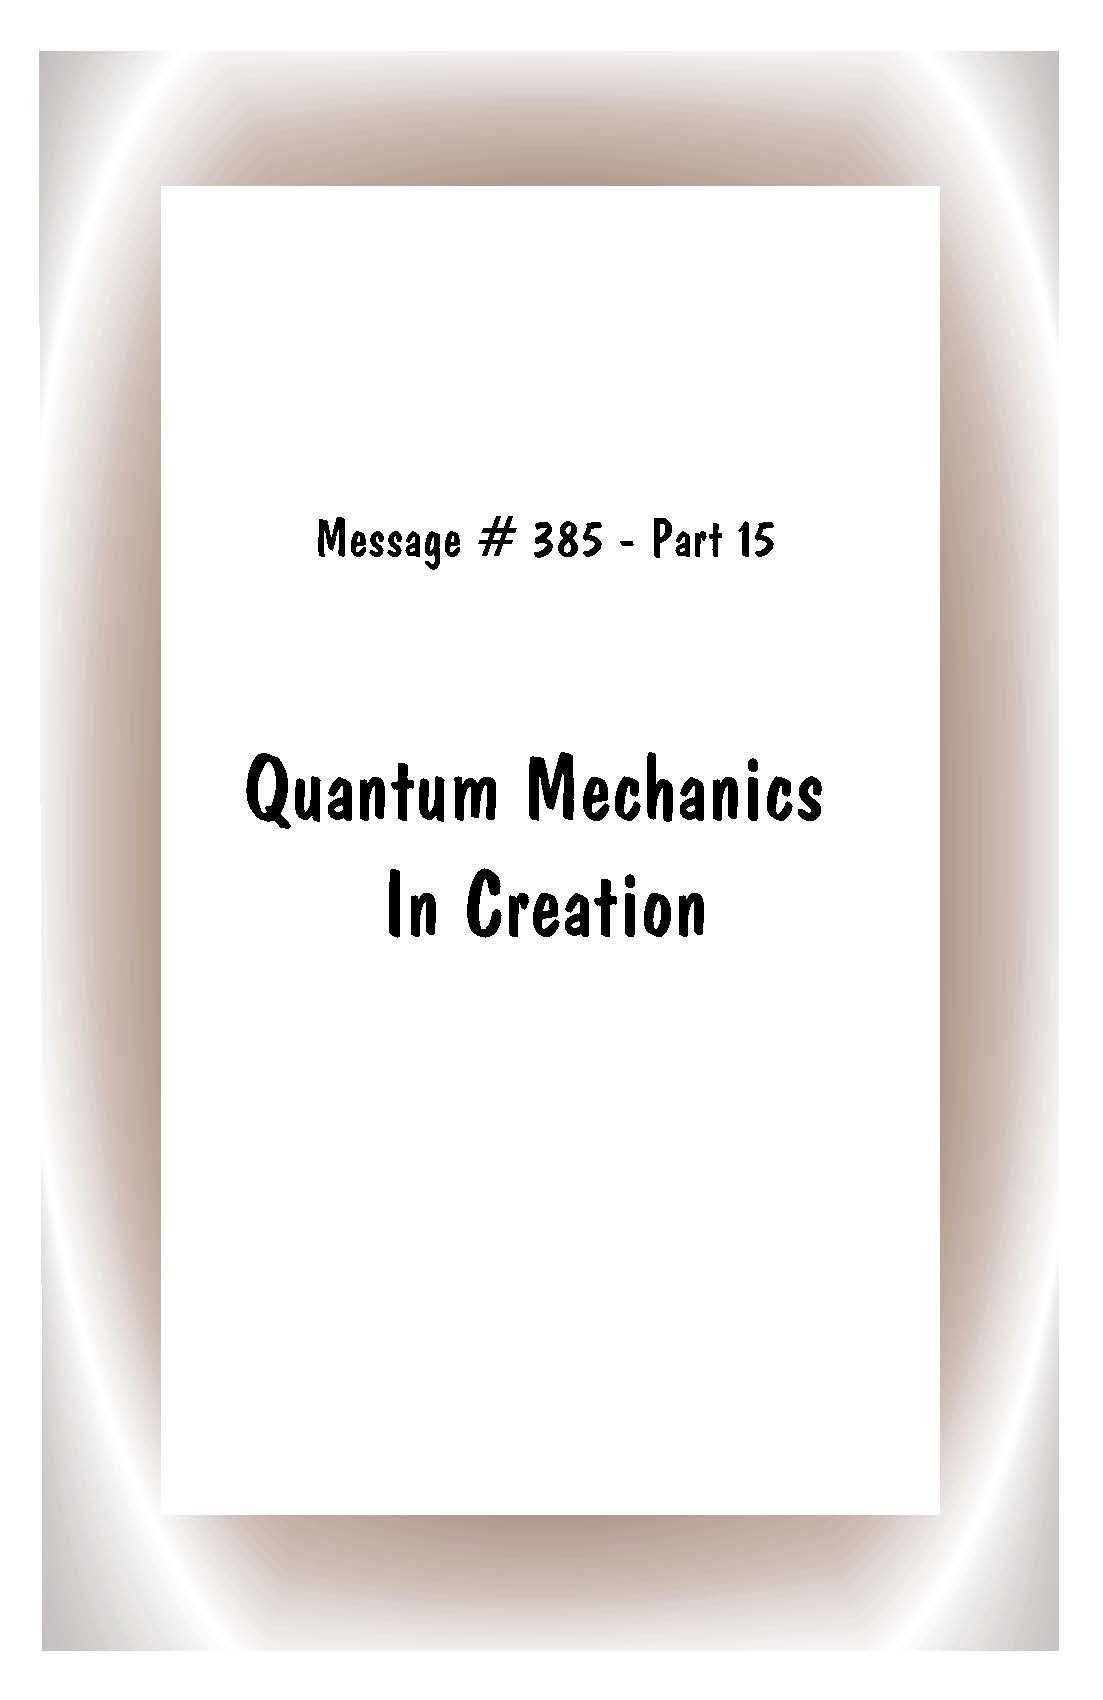 QuantumMechanicsInCreation.LEM.385.15.Cover.040816.72dpi